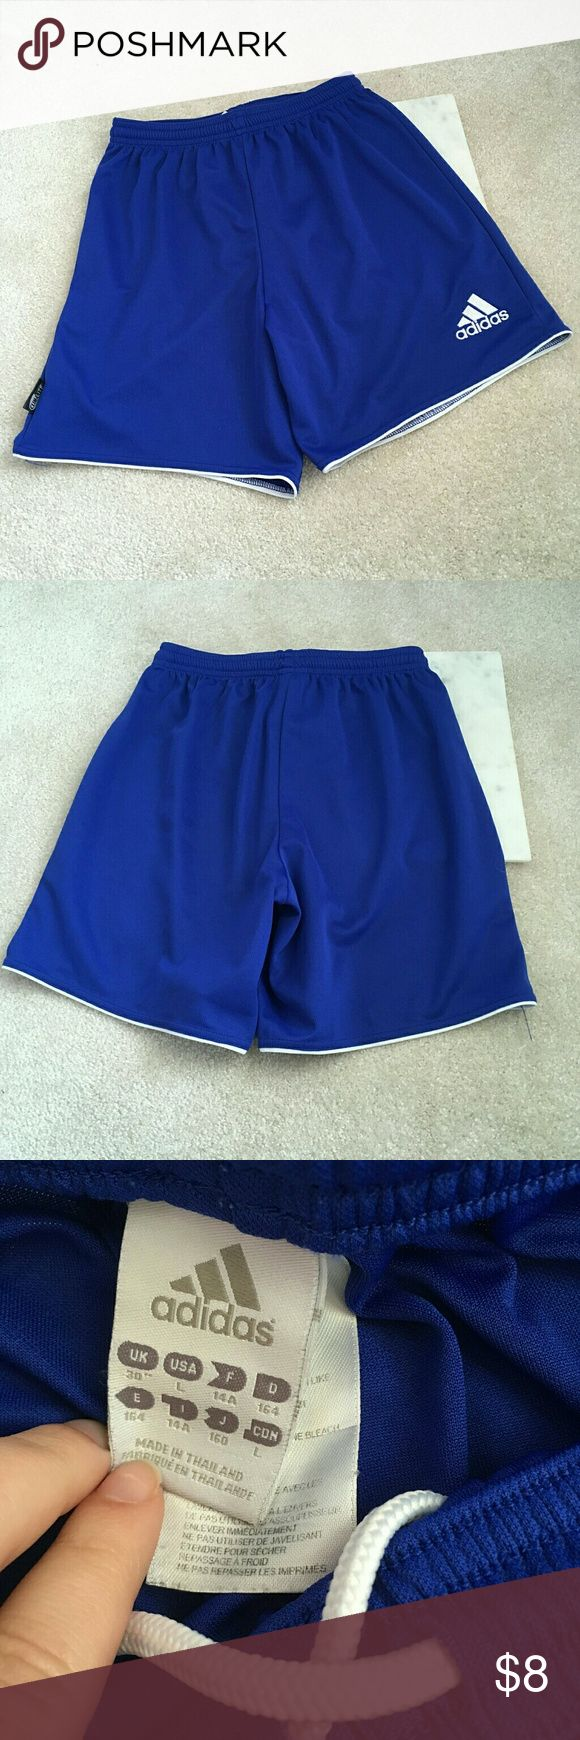 adidas girls large cobalt blue basketball shorts These exercise shorts are great for girls! They are a girls large from Adidas. They are a beautiful cobalt blue color. Excellent condition minus a pull or two Adidas Bottoms Shorts